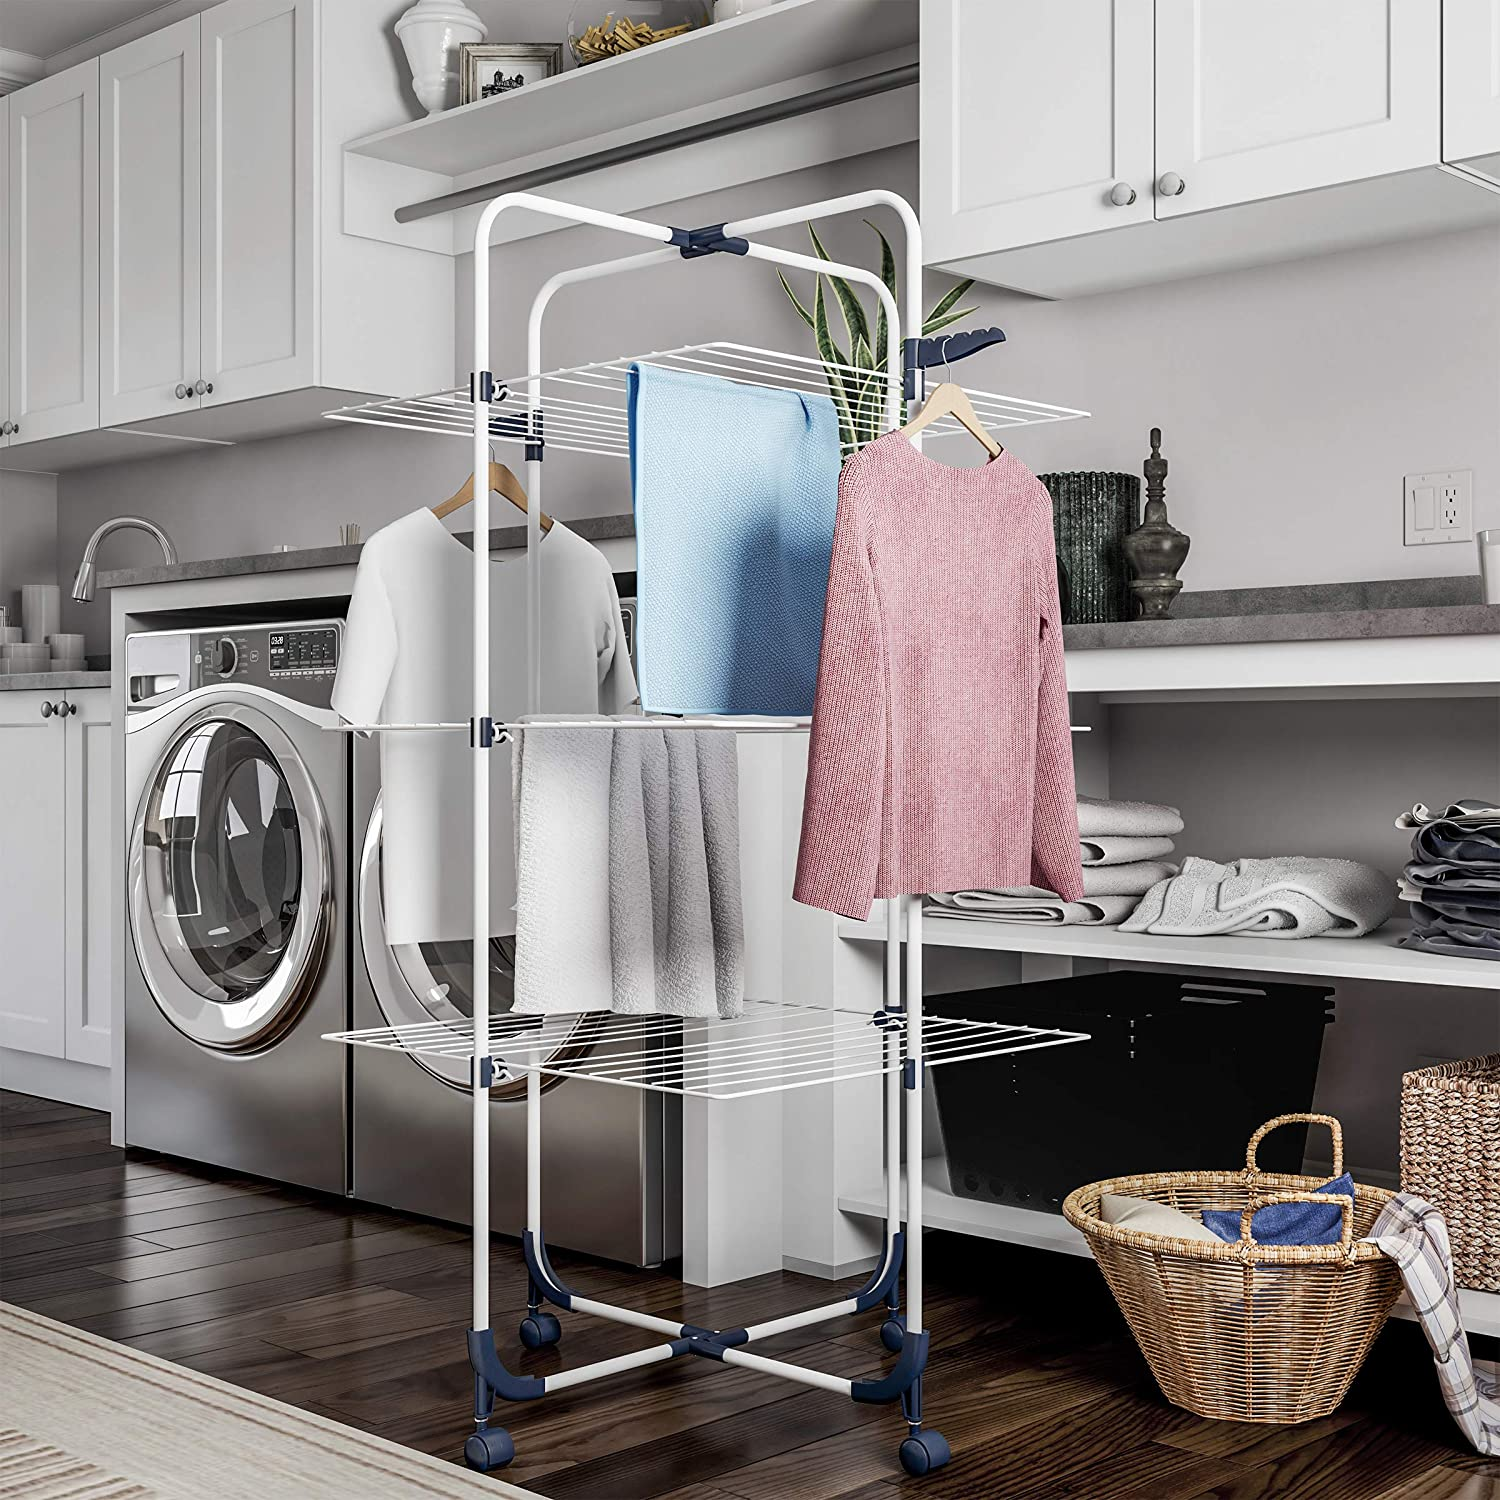 Lavish Home Clothes Rack – 3-Tiered Laundry Station with Collapsible Shelves and Wheels for Folding, Sorting and Air Drying Garments